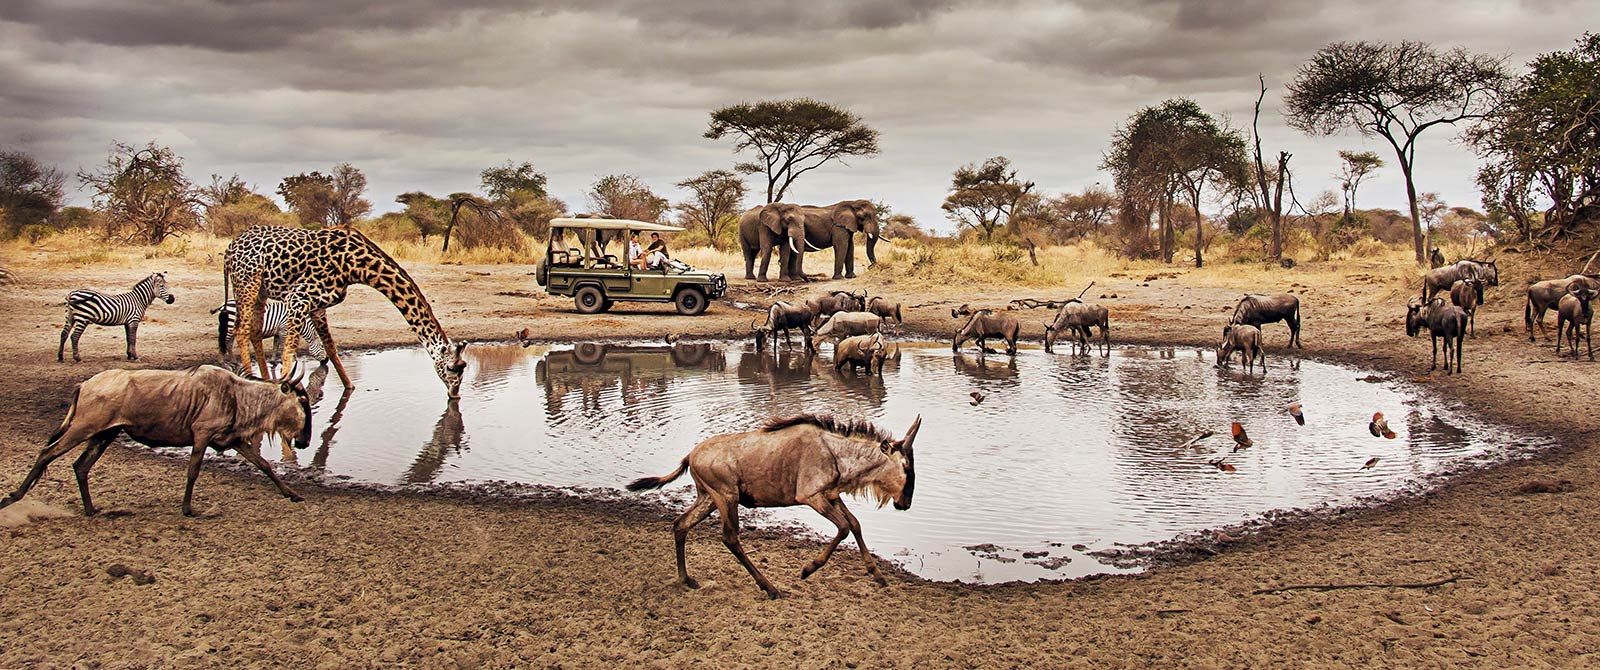 9 Facts About Serengeti National Park